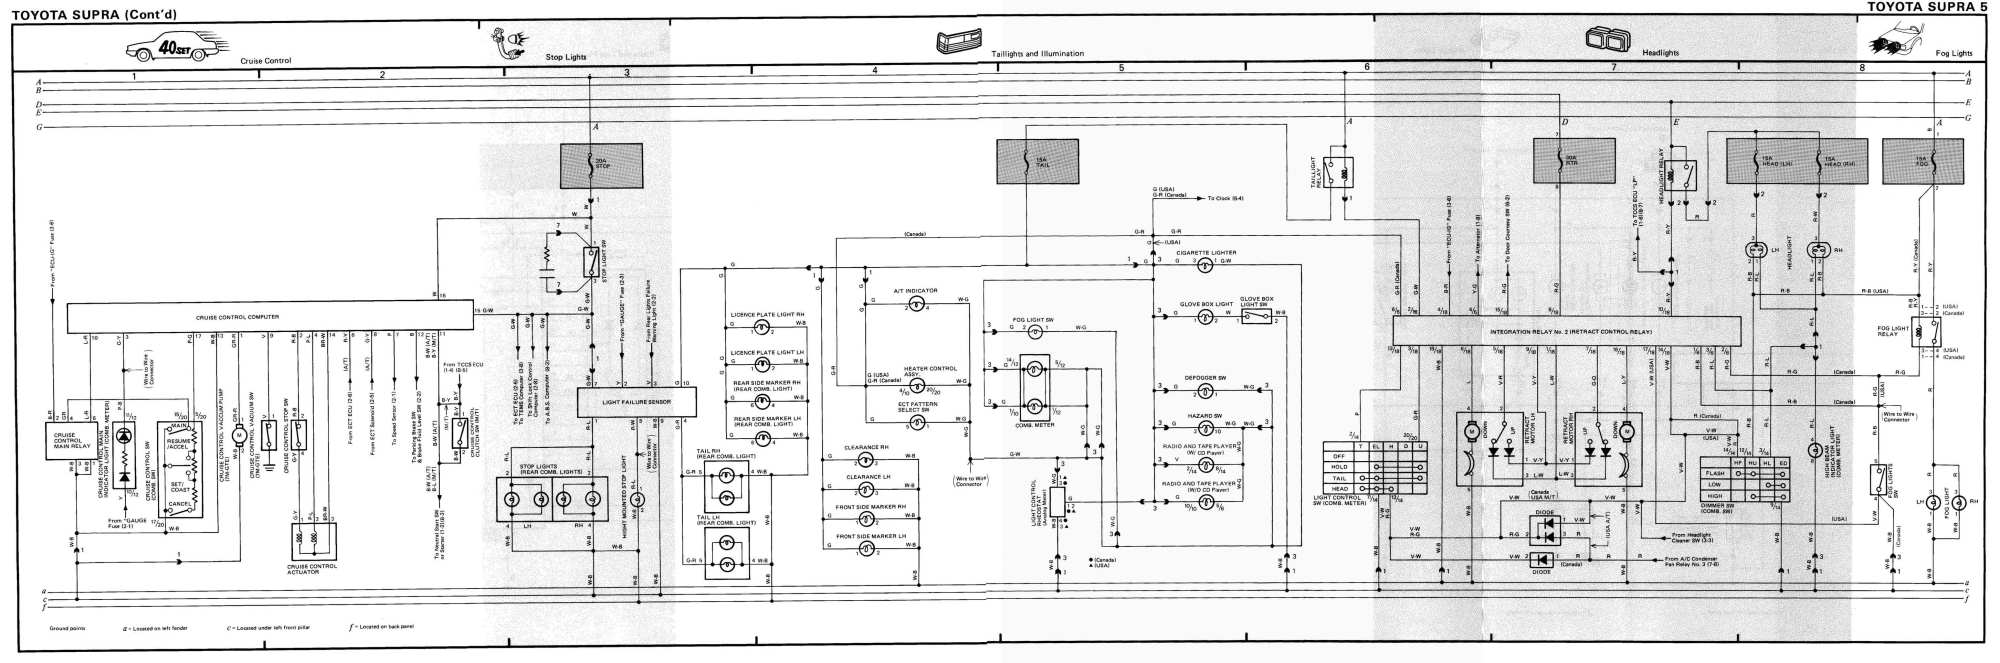 hight resolution of 87 supra vacuum diagram wiring schematic wiring diagram post 87 toyota supra wiring harness diagram